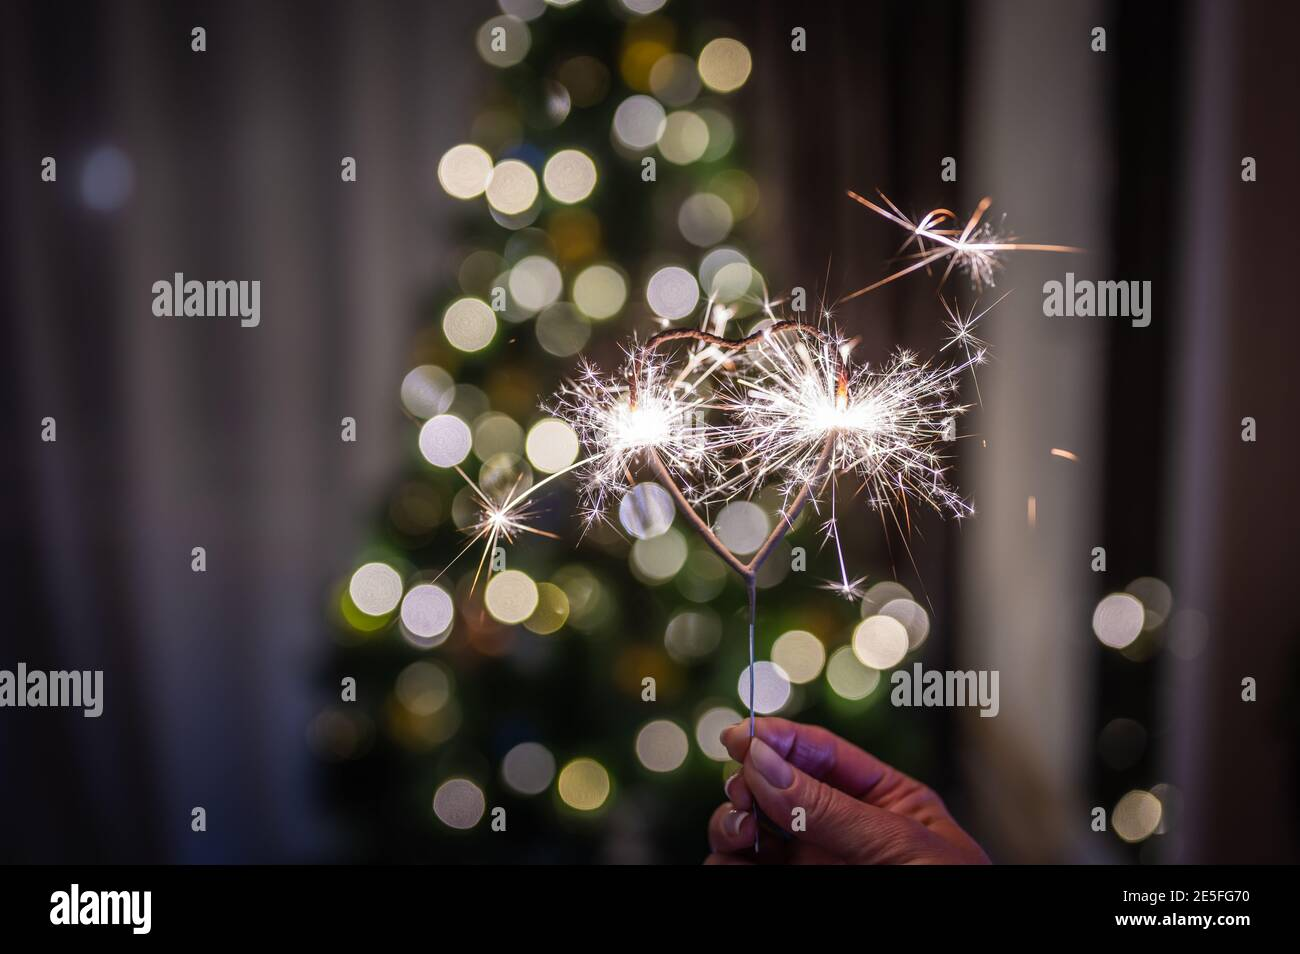 Bengal fire heart-shaped in the woman's hand burns against the background of a Christmas tree with colored garlands with bokeh Stock Photo